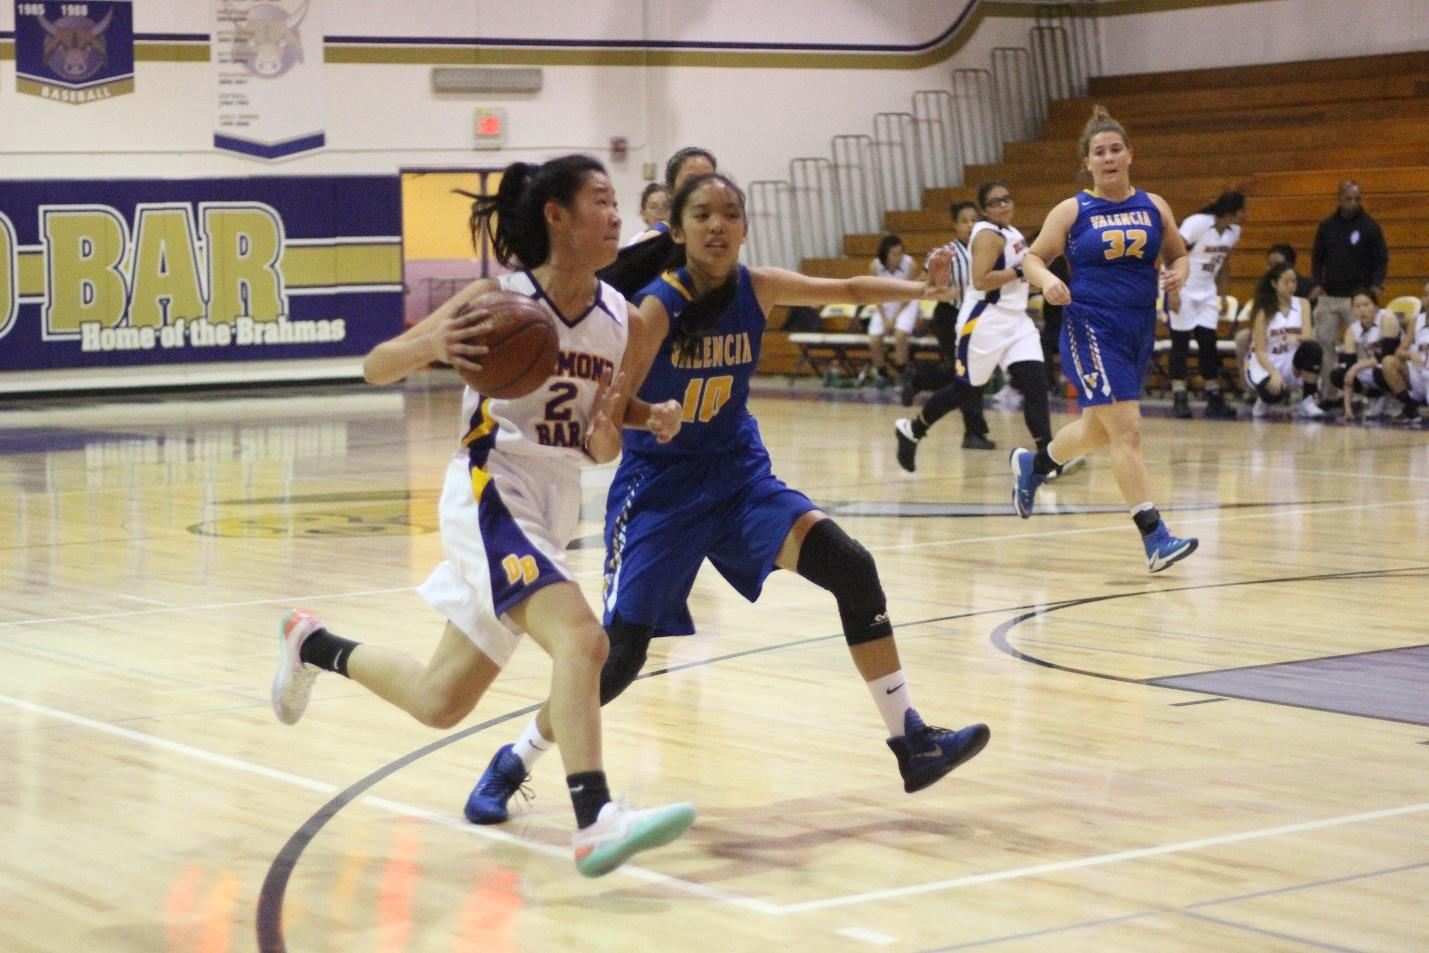 Junior Karen Shao drives to the basket during the first game of the season against Valencia. DB won the game, 56-25.